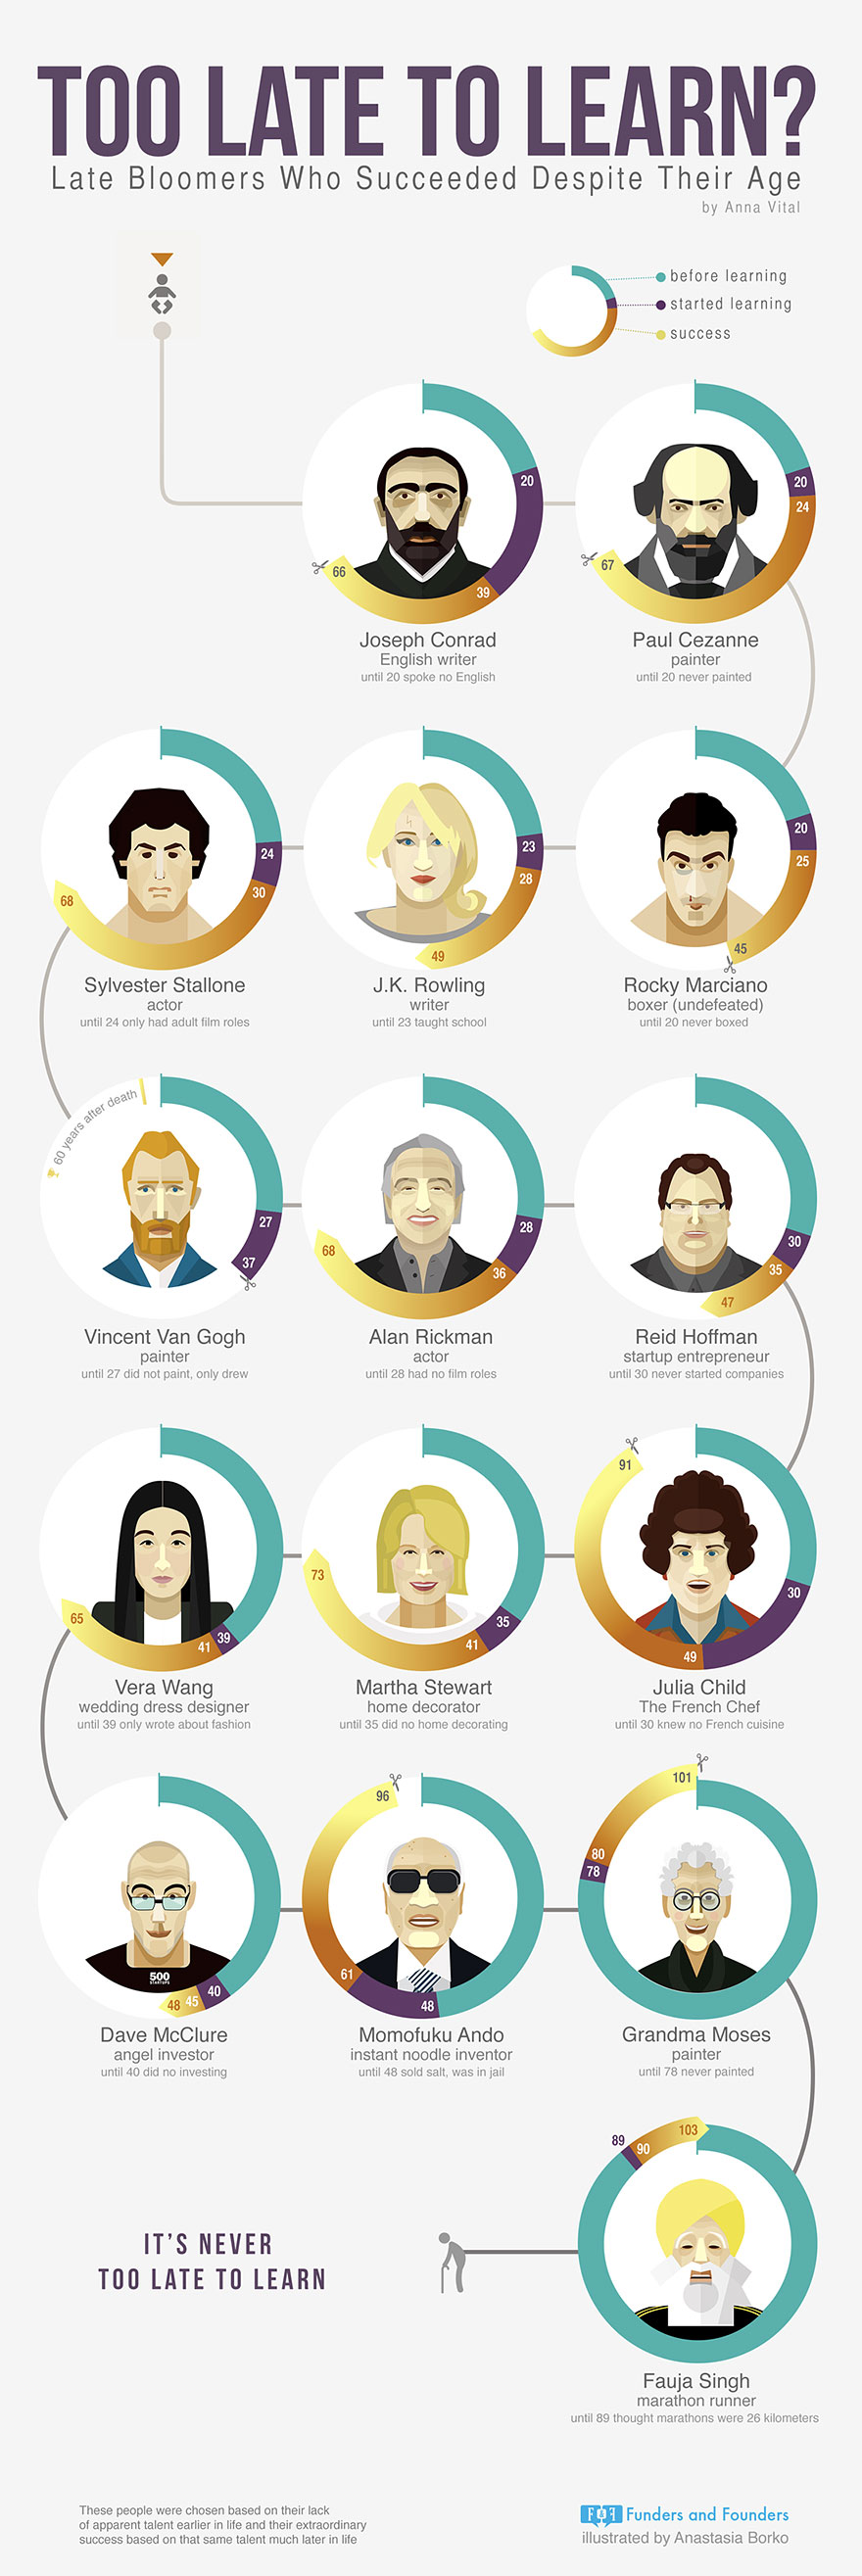 too-late-to-learn-famous-late-bloomers-infographics-anna-vital-anastasia-borko-1